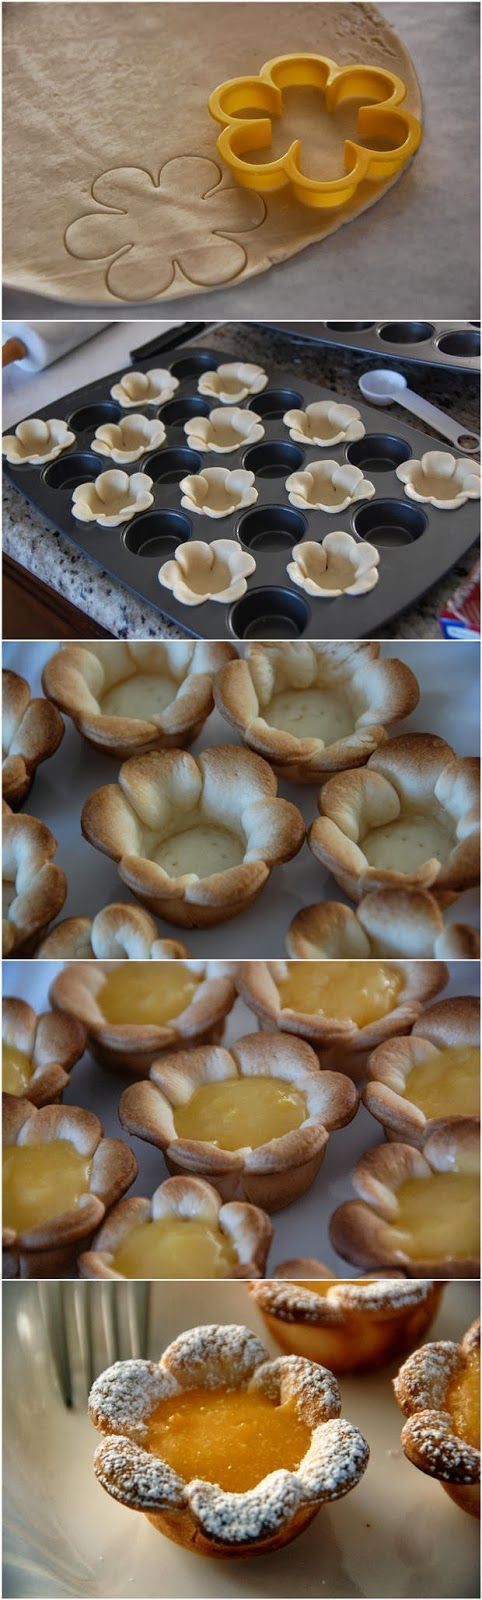 Flower shaped Mini Lemon Curd Tarts. Lo hare con relleno,de key lime pie!! Yumi!